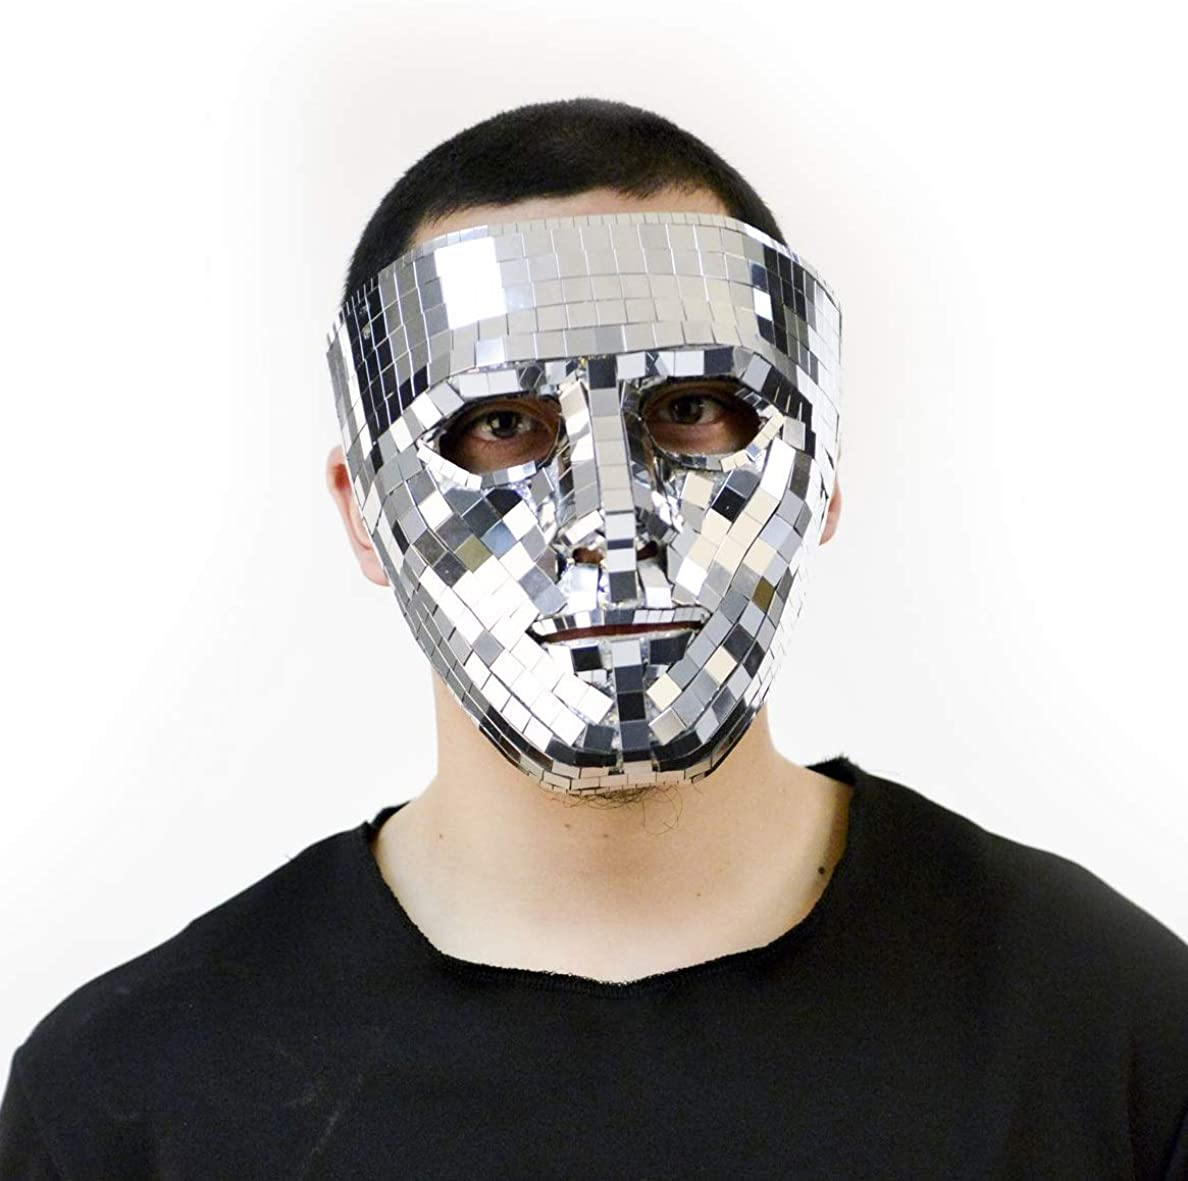 Charades Mirror Face Mask Adult Costume, As Shown, One Size